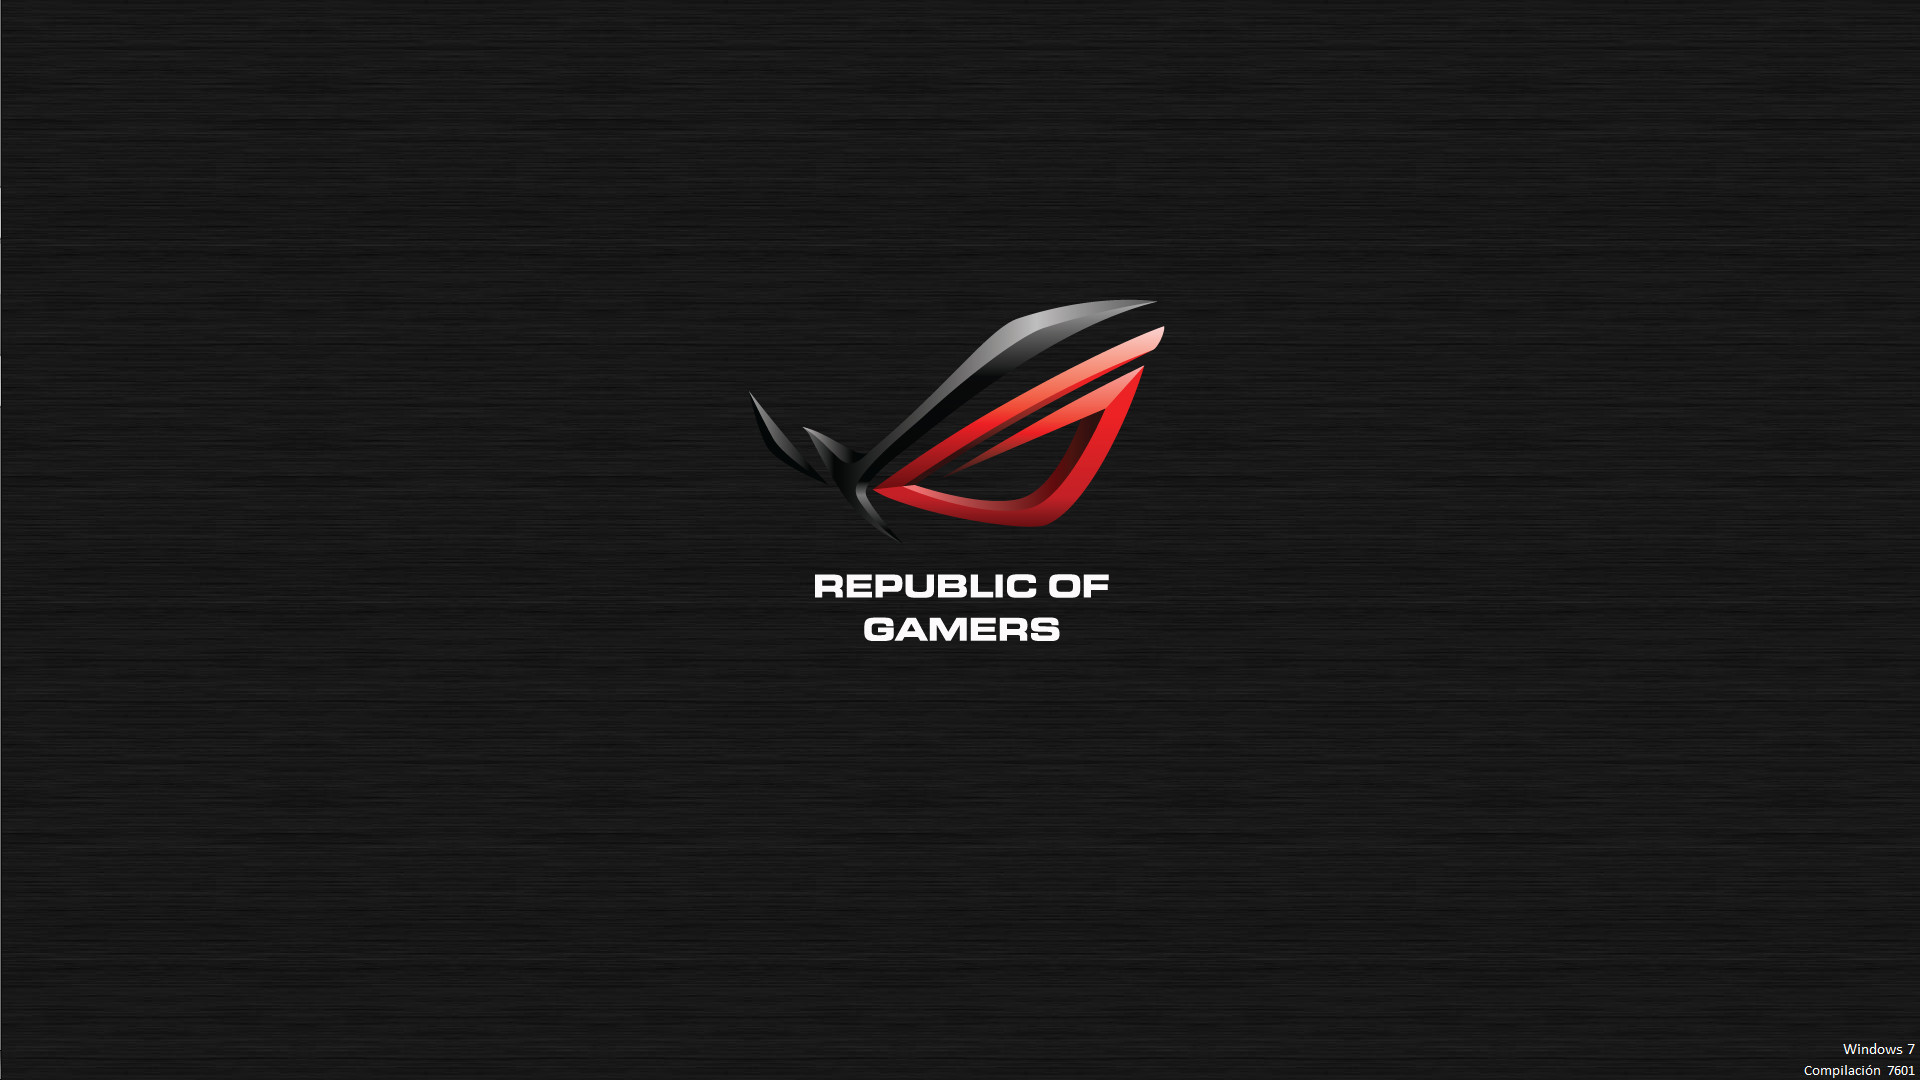 1920x1080 Asus Rog Republic Of Gaming Gamers Wallpaper And Background